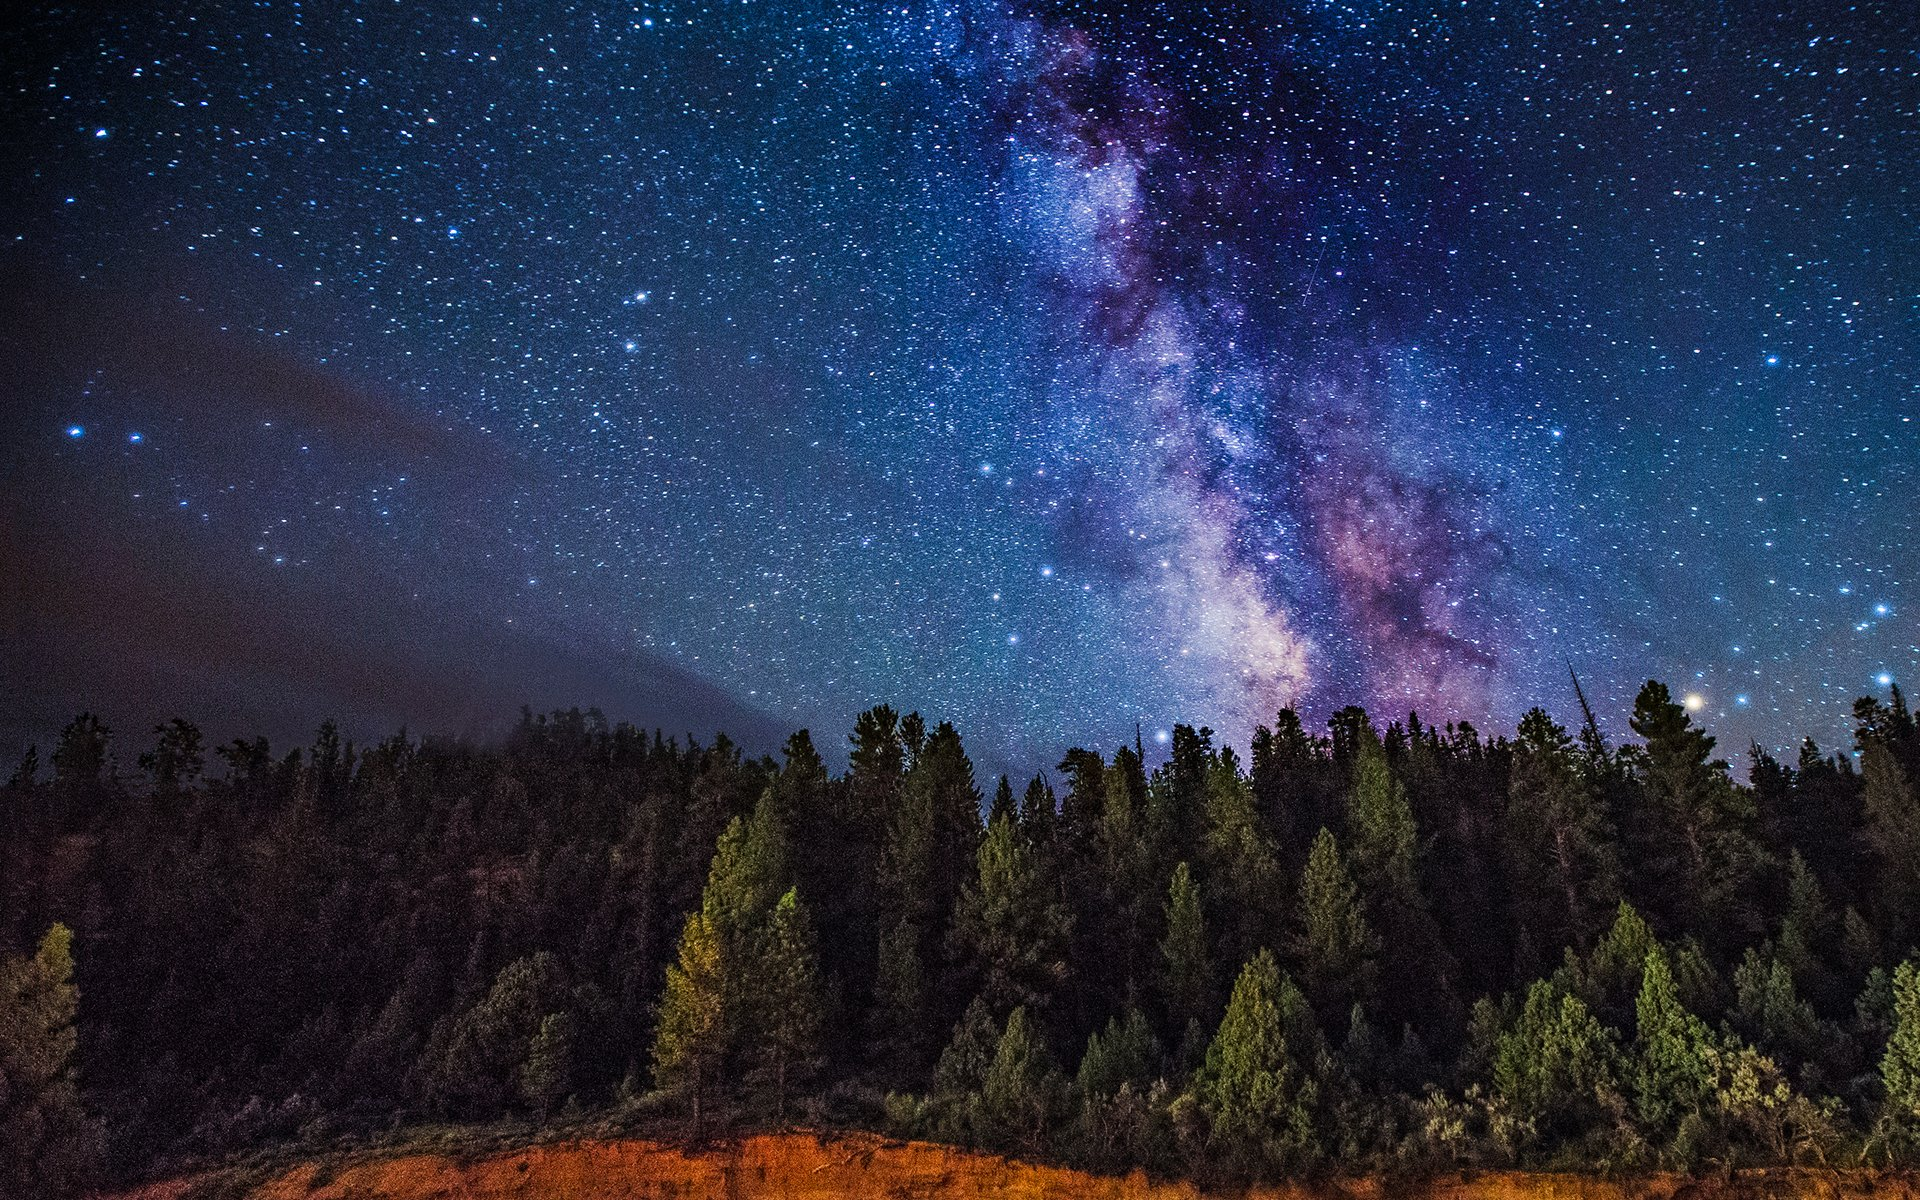 Milky Way Wallpaper 1920x1080 71 Images: Milky Way Over The Forest HD Wallpaper